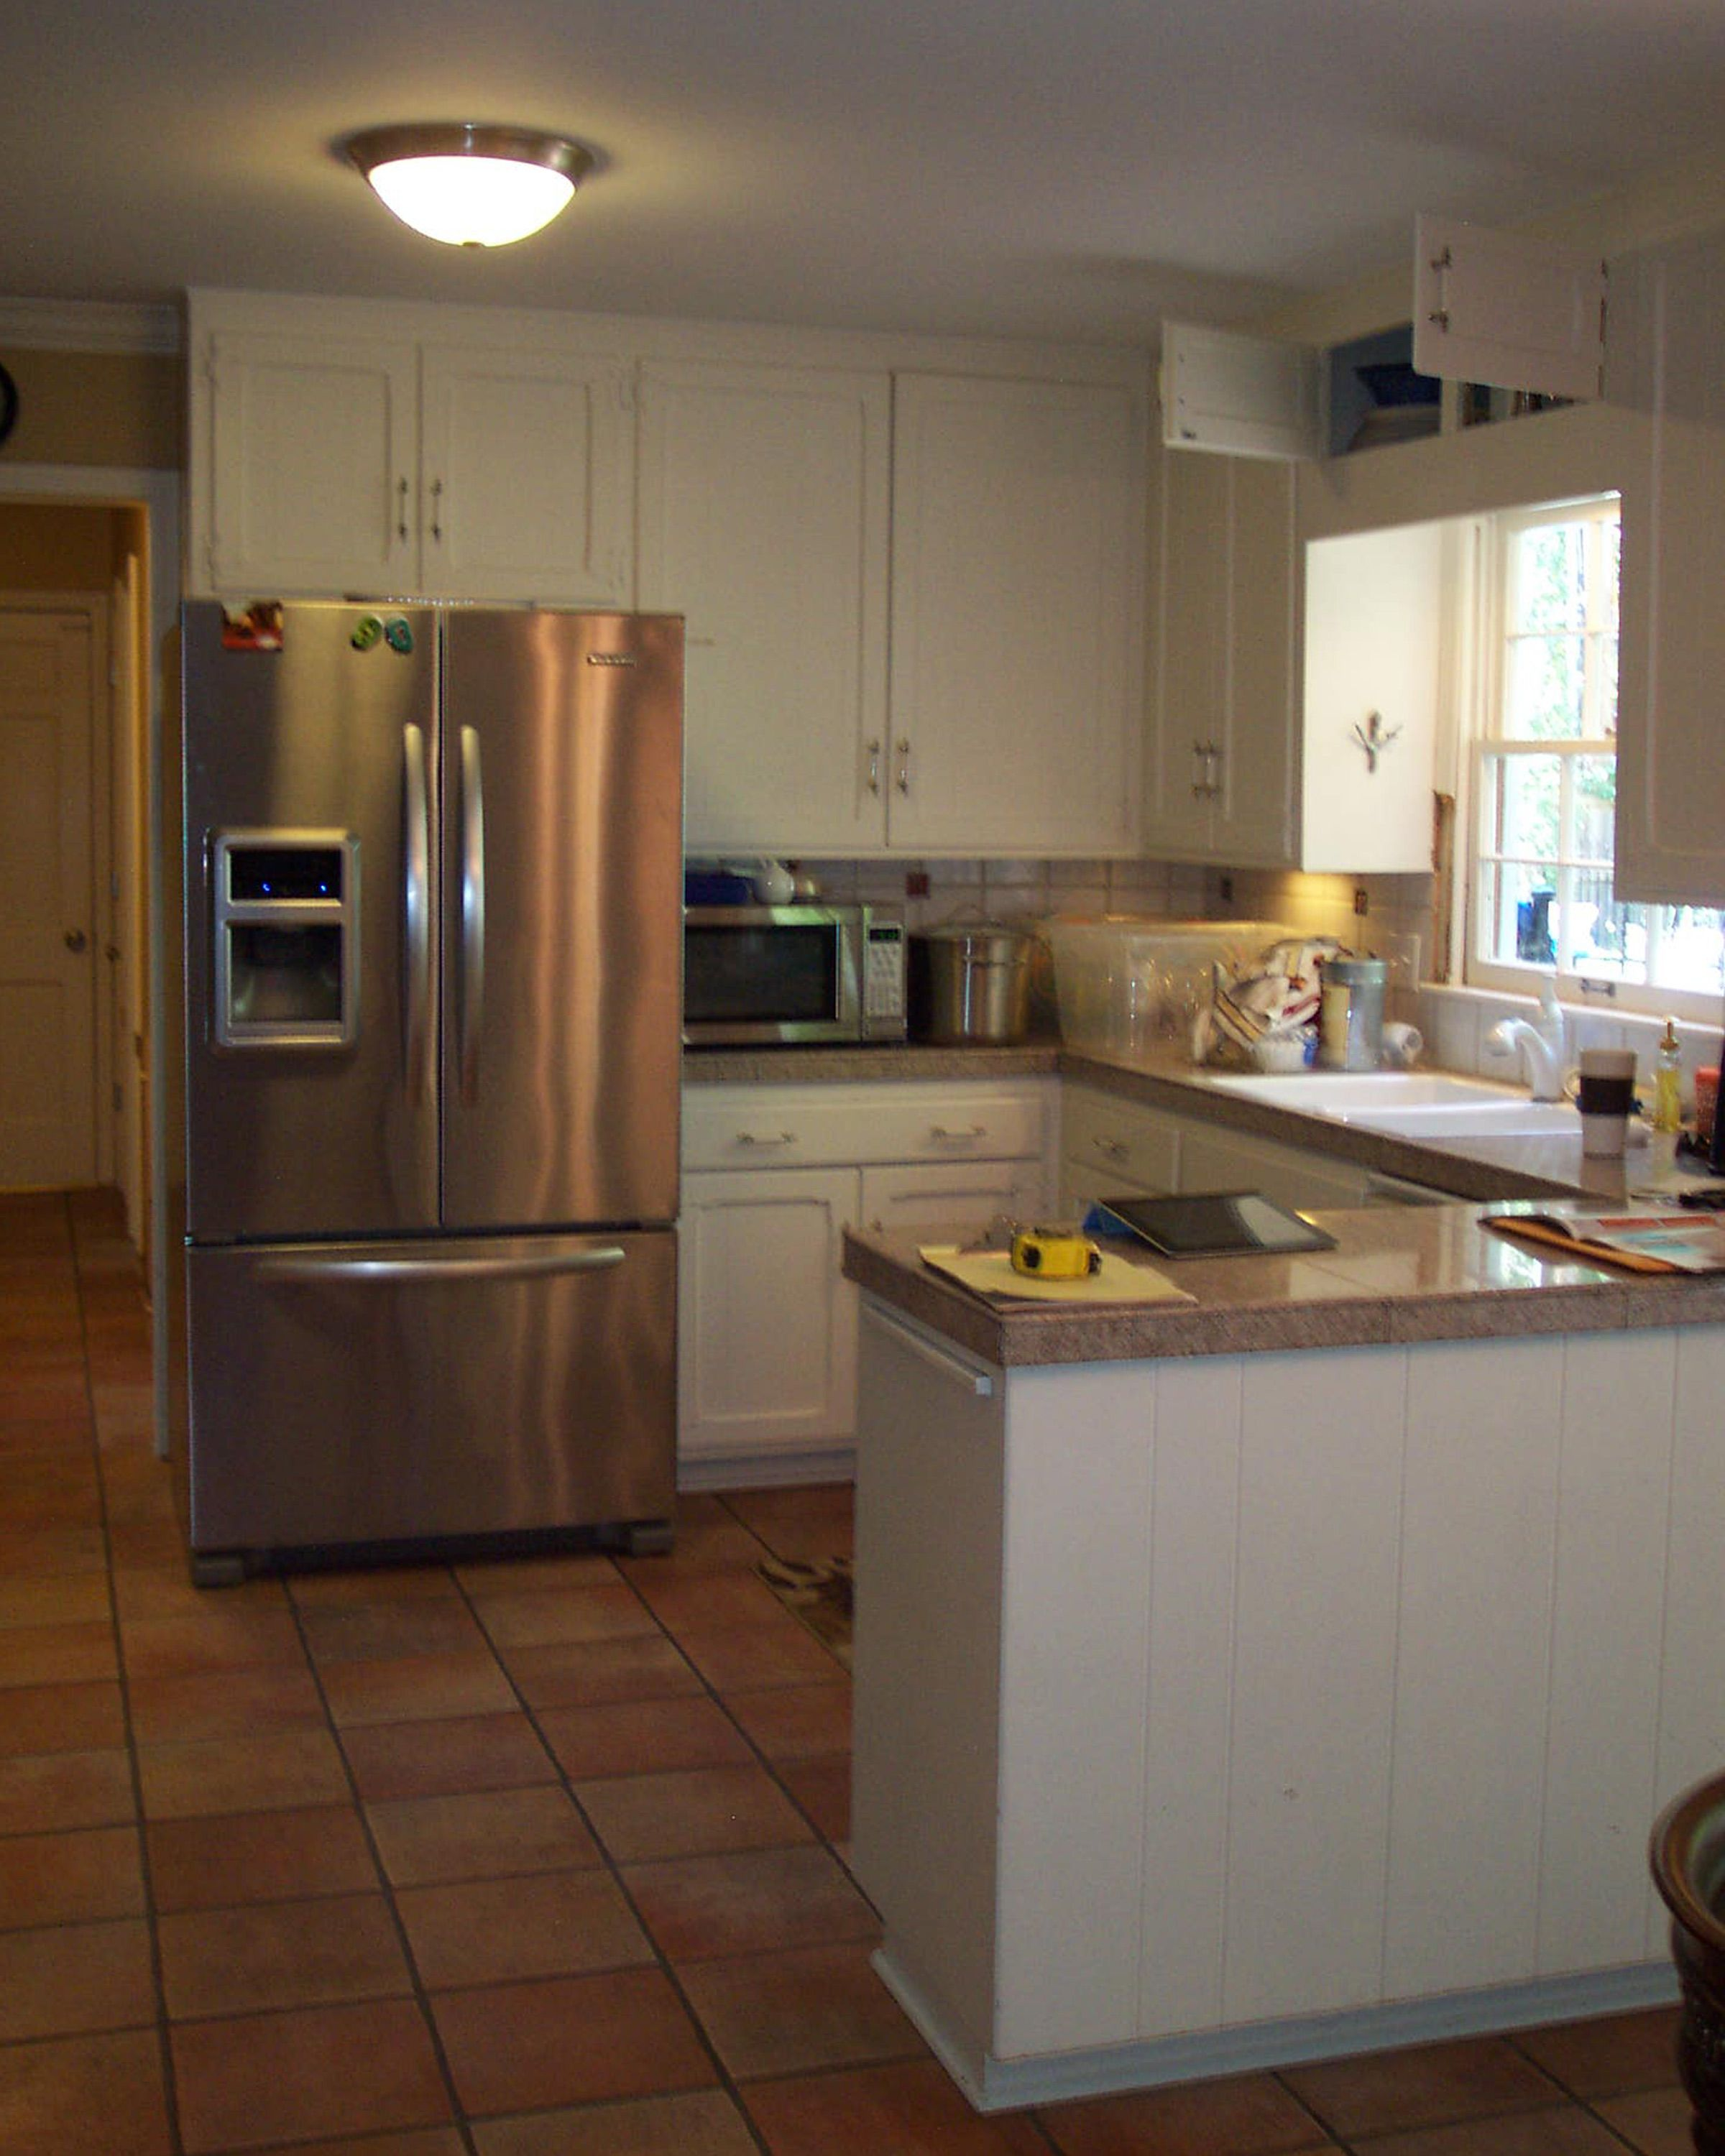 saved for refrigerator position kitchen layout kitchen remodel small small u shaped kitchens on u kitchen remodel id=57152